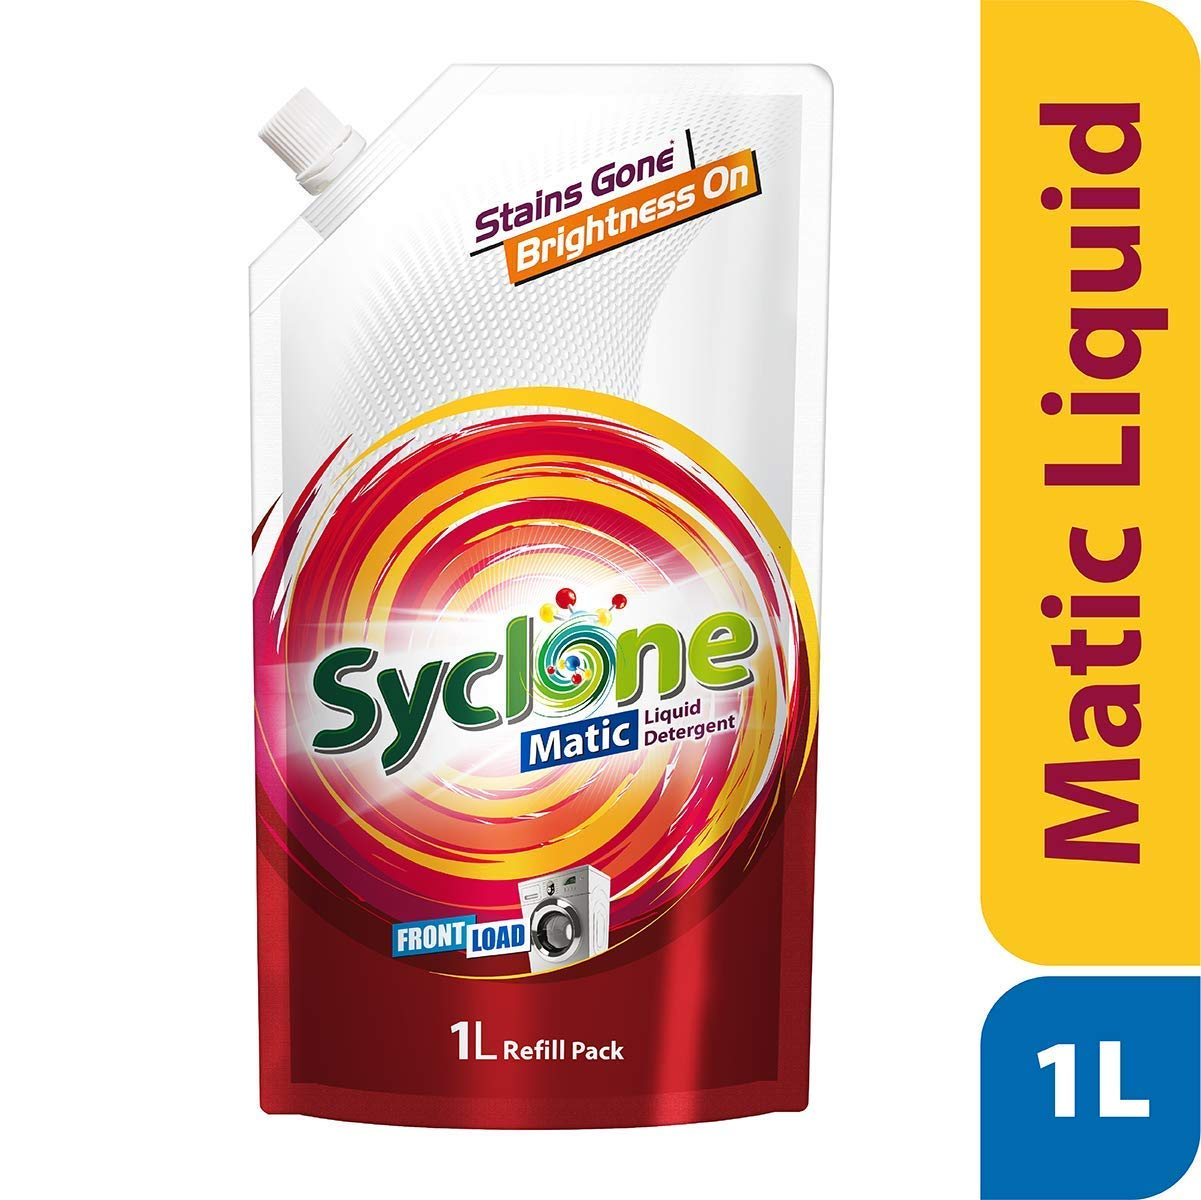 [Pantry] Syclone Matic Front Load liquid Detergent (refill), 1 ltr